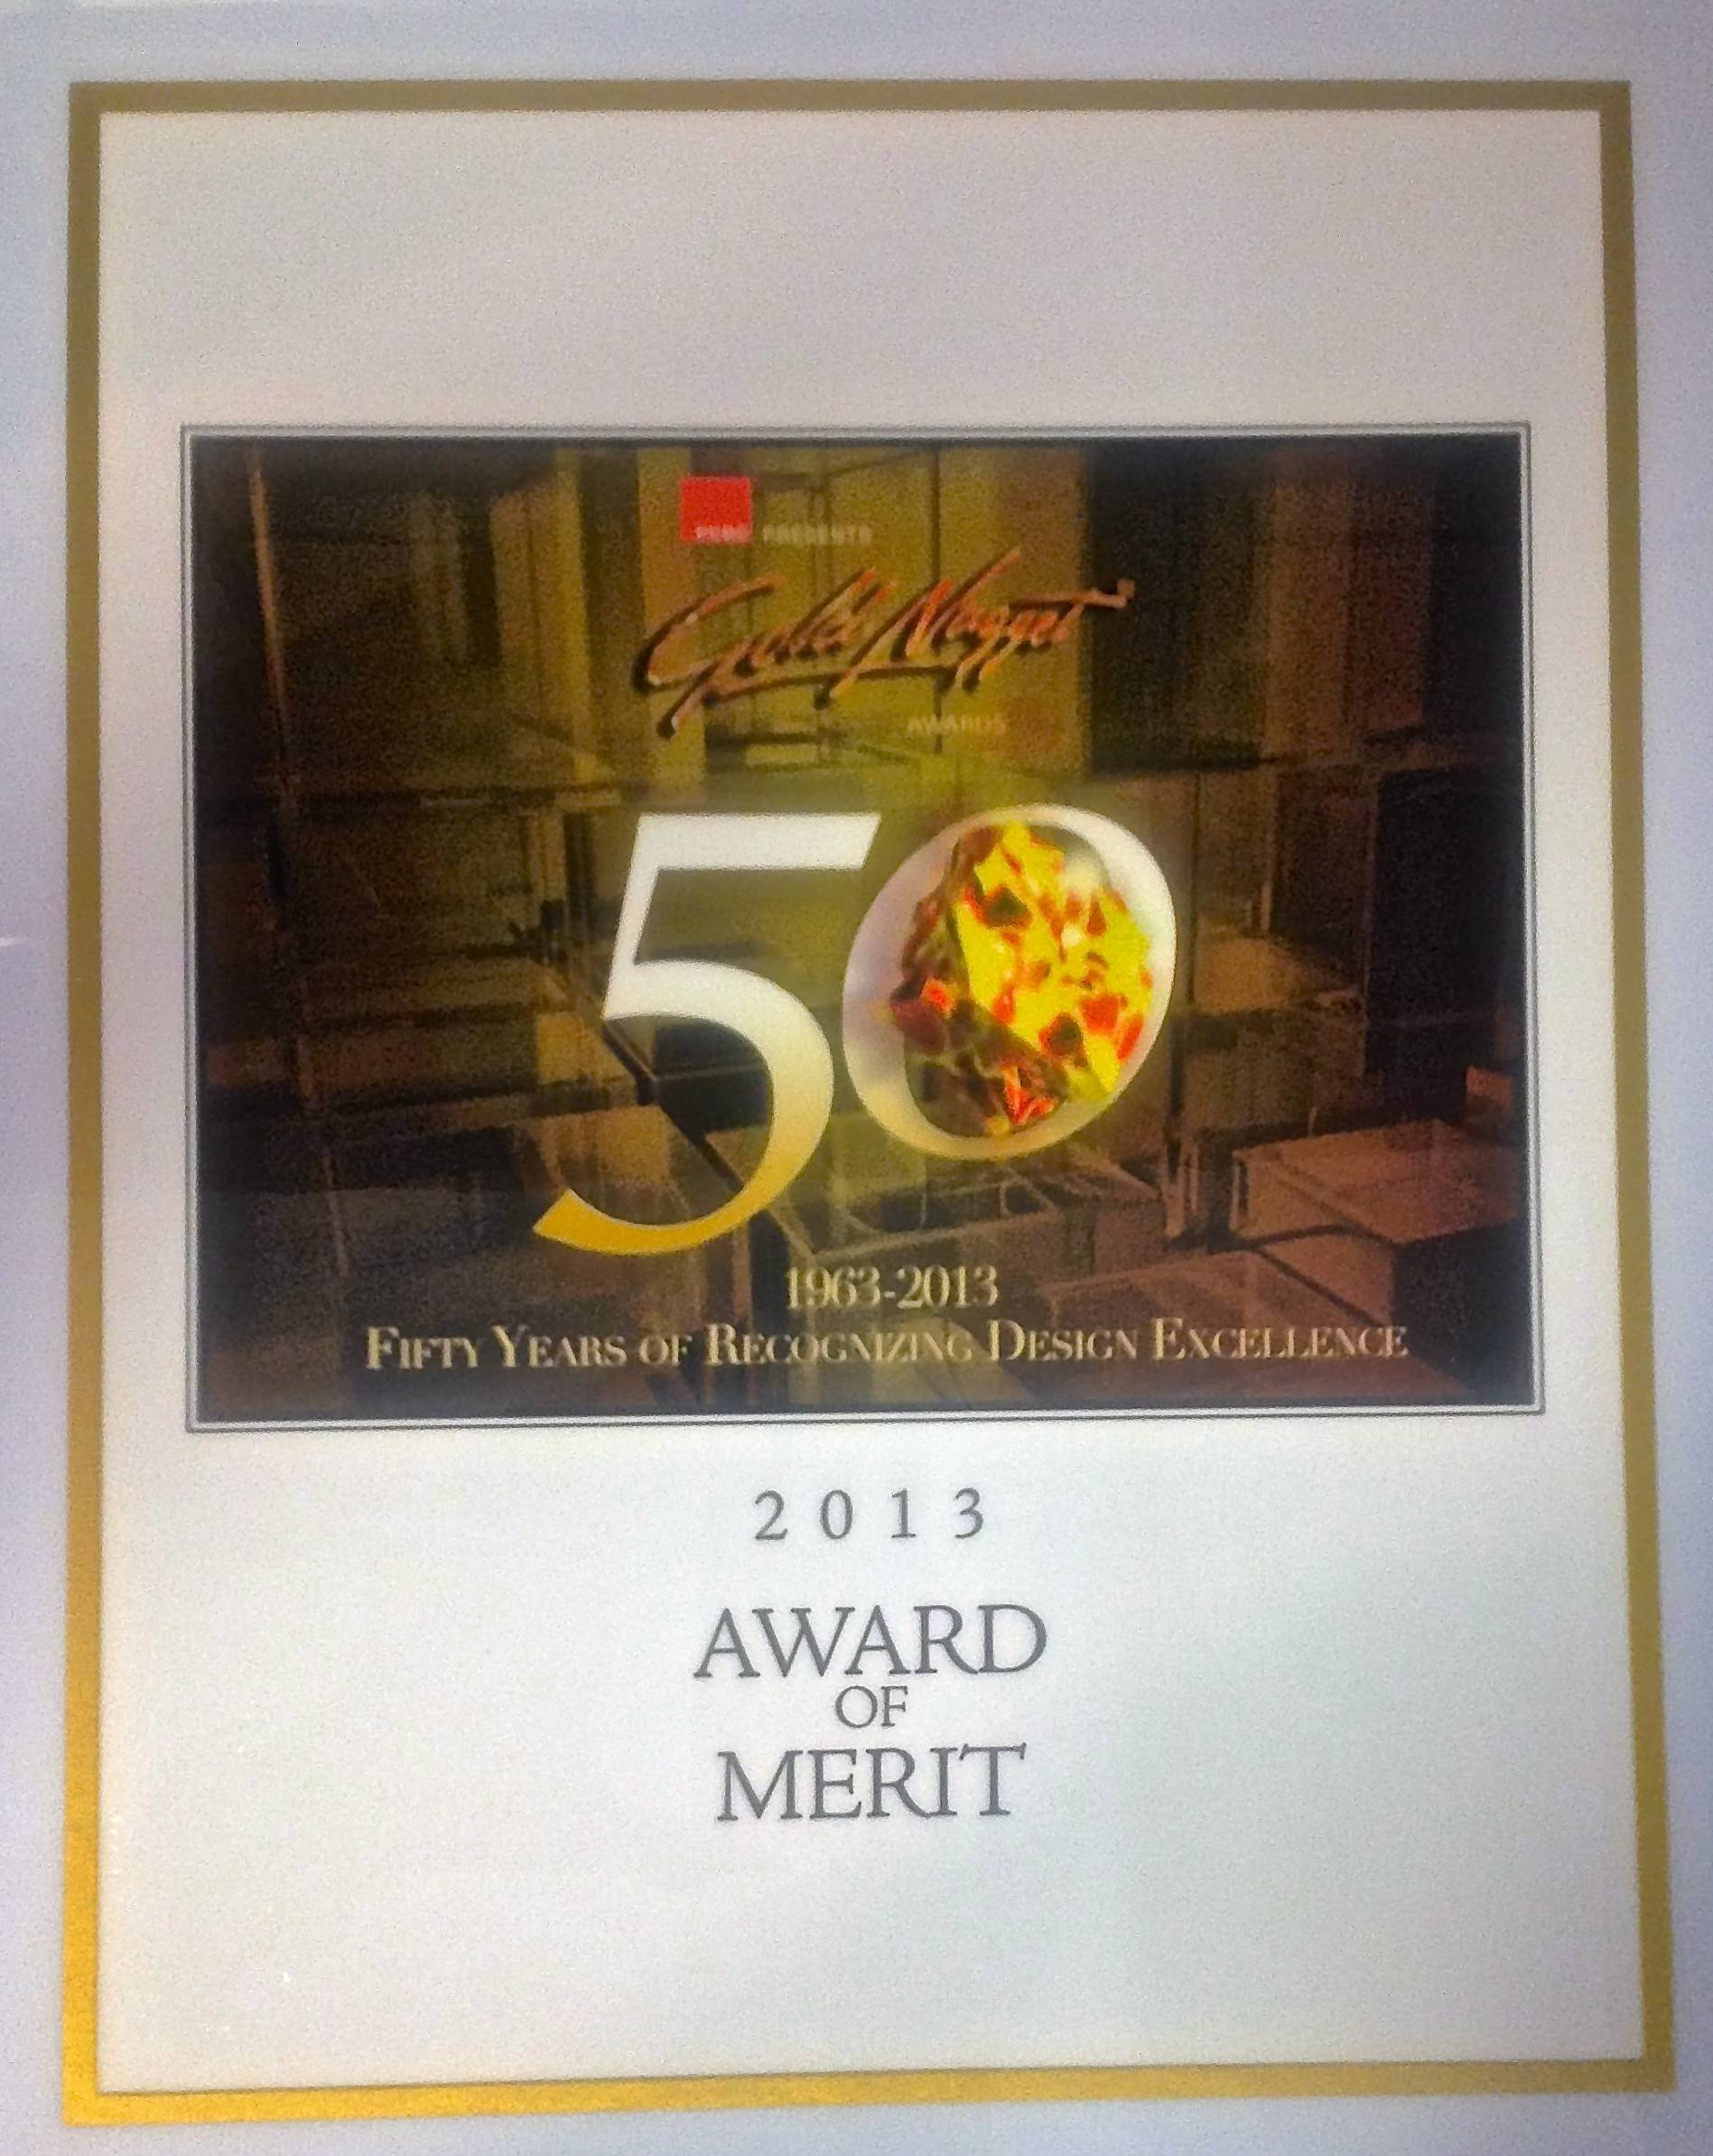 2013 Award of Merit - Best Multi-Family Housing Project